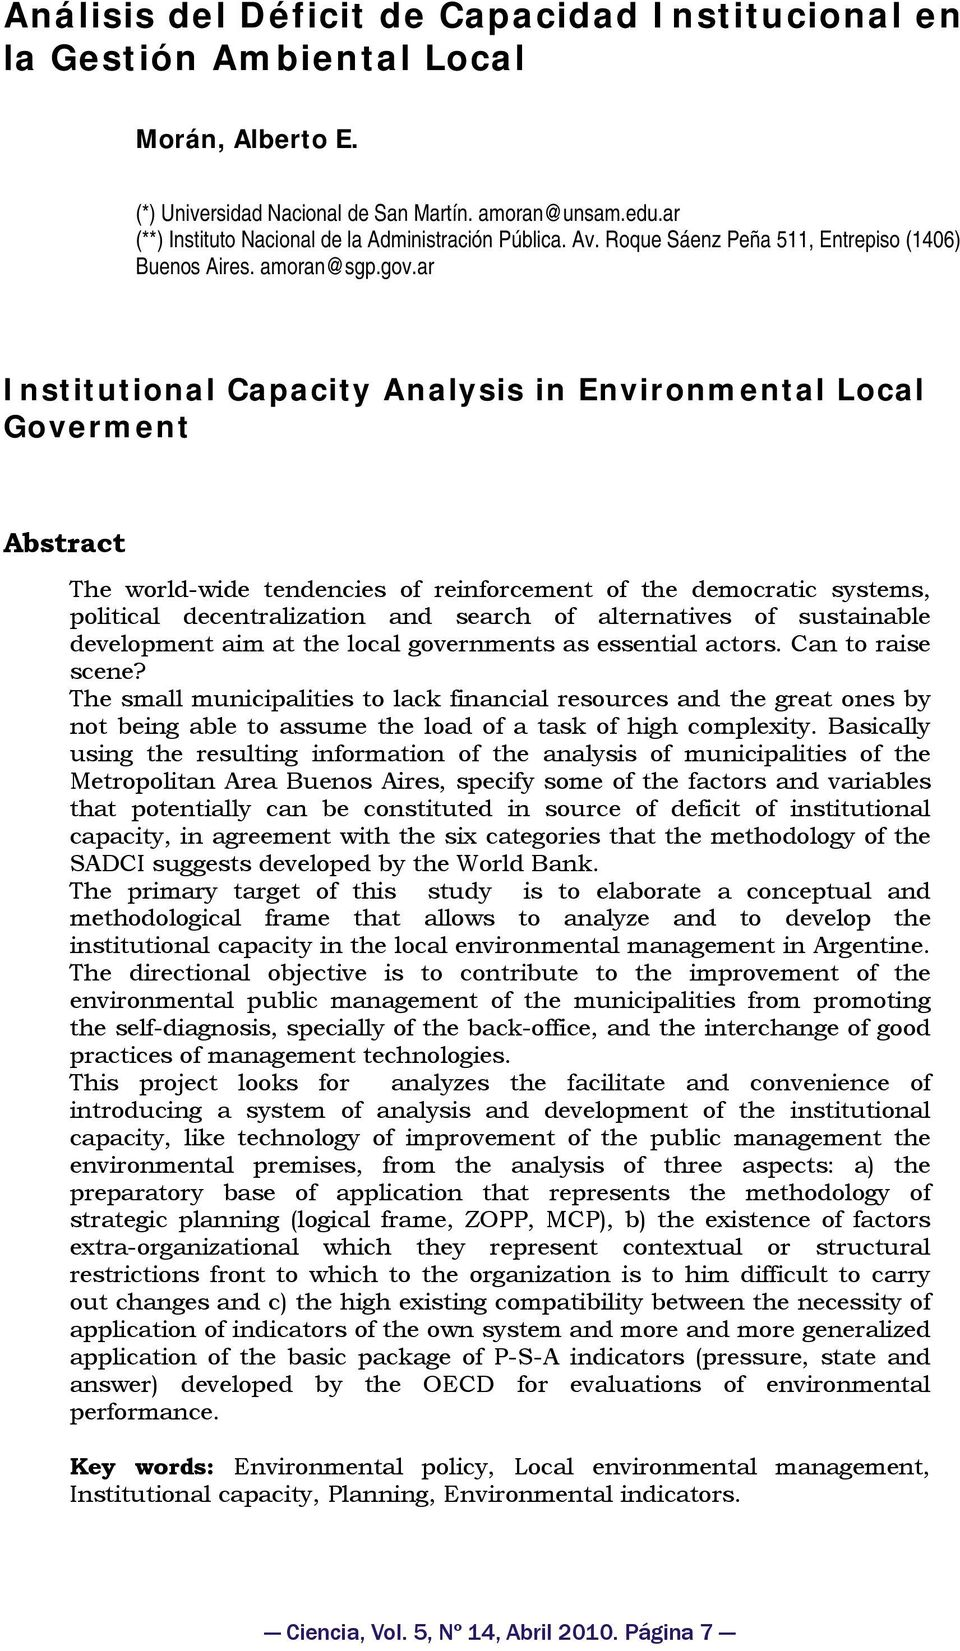 ar Institutional Capacity Analysis in Environmental Local Goverment Abstract The world-wide tendencies of reinforcement of the democratic systems, political decentralization and search of